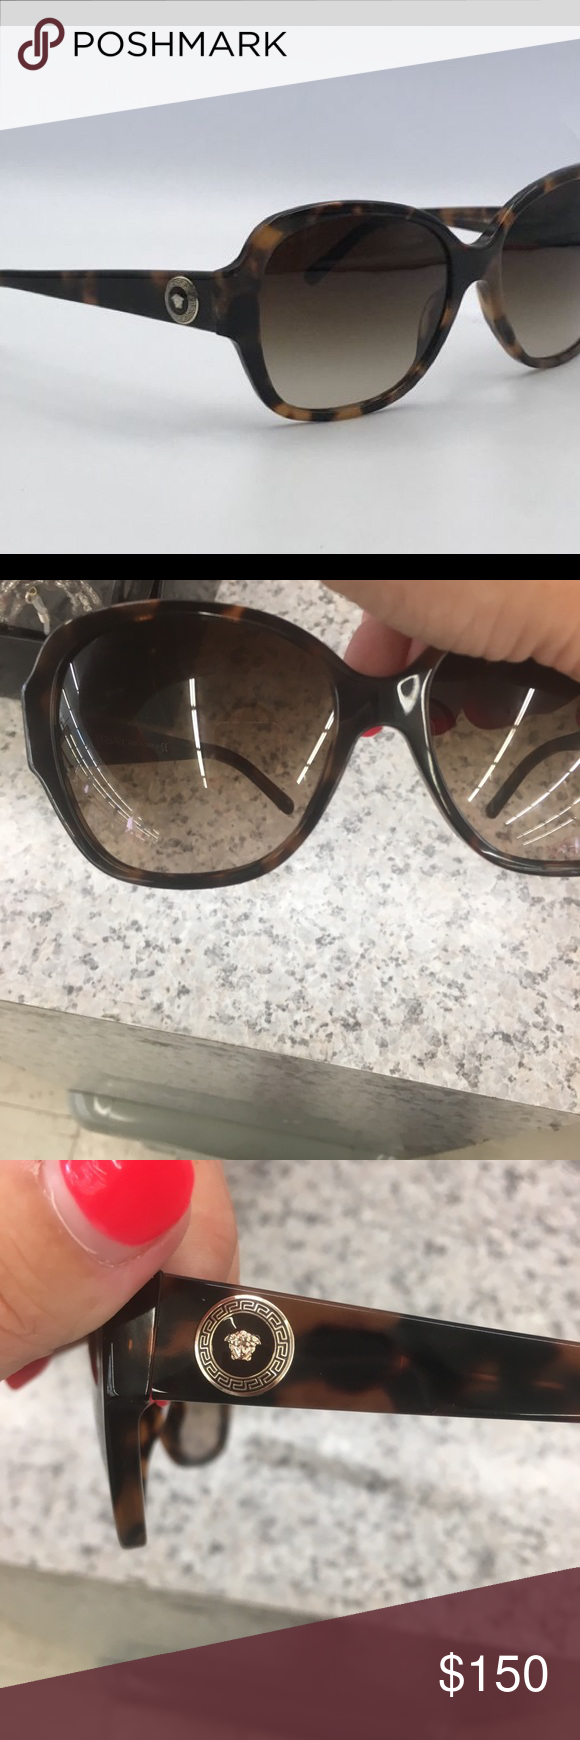 1455d3cbcee6 Spotted while shopping on Poshmark    Versace   Logo Tortoise Square  Sunglasses!  poshmark  fashion  shopping  style  Versace  Accessories